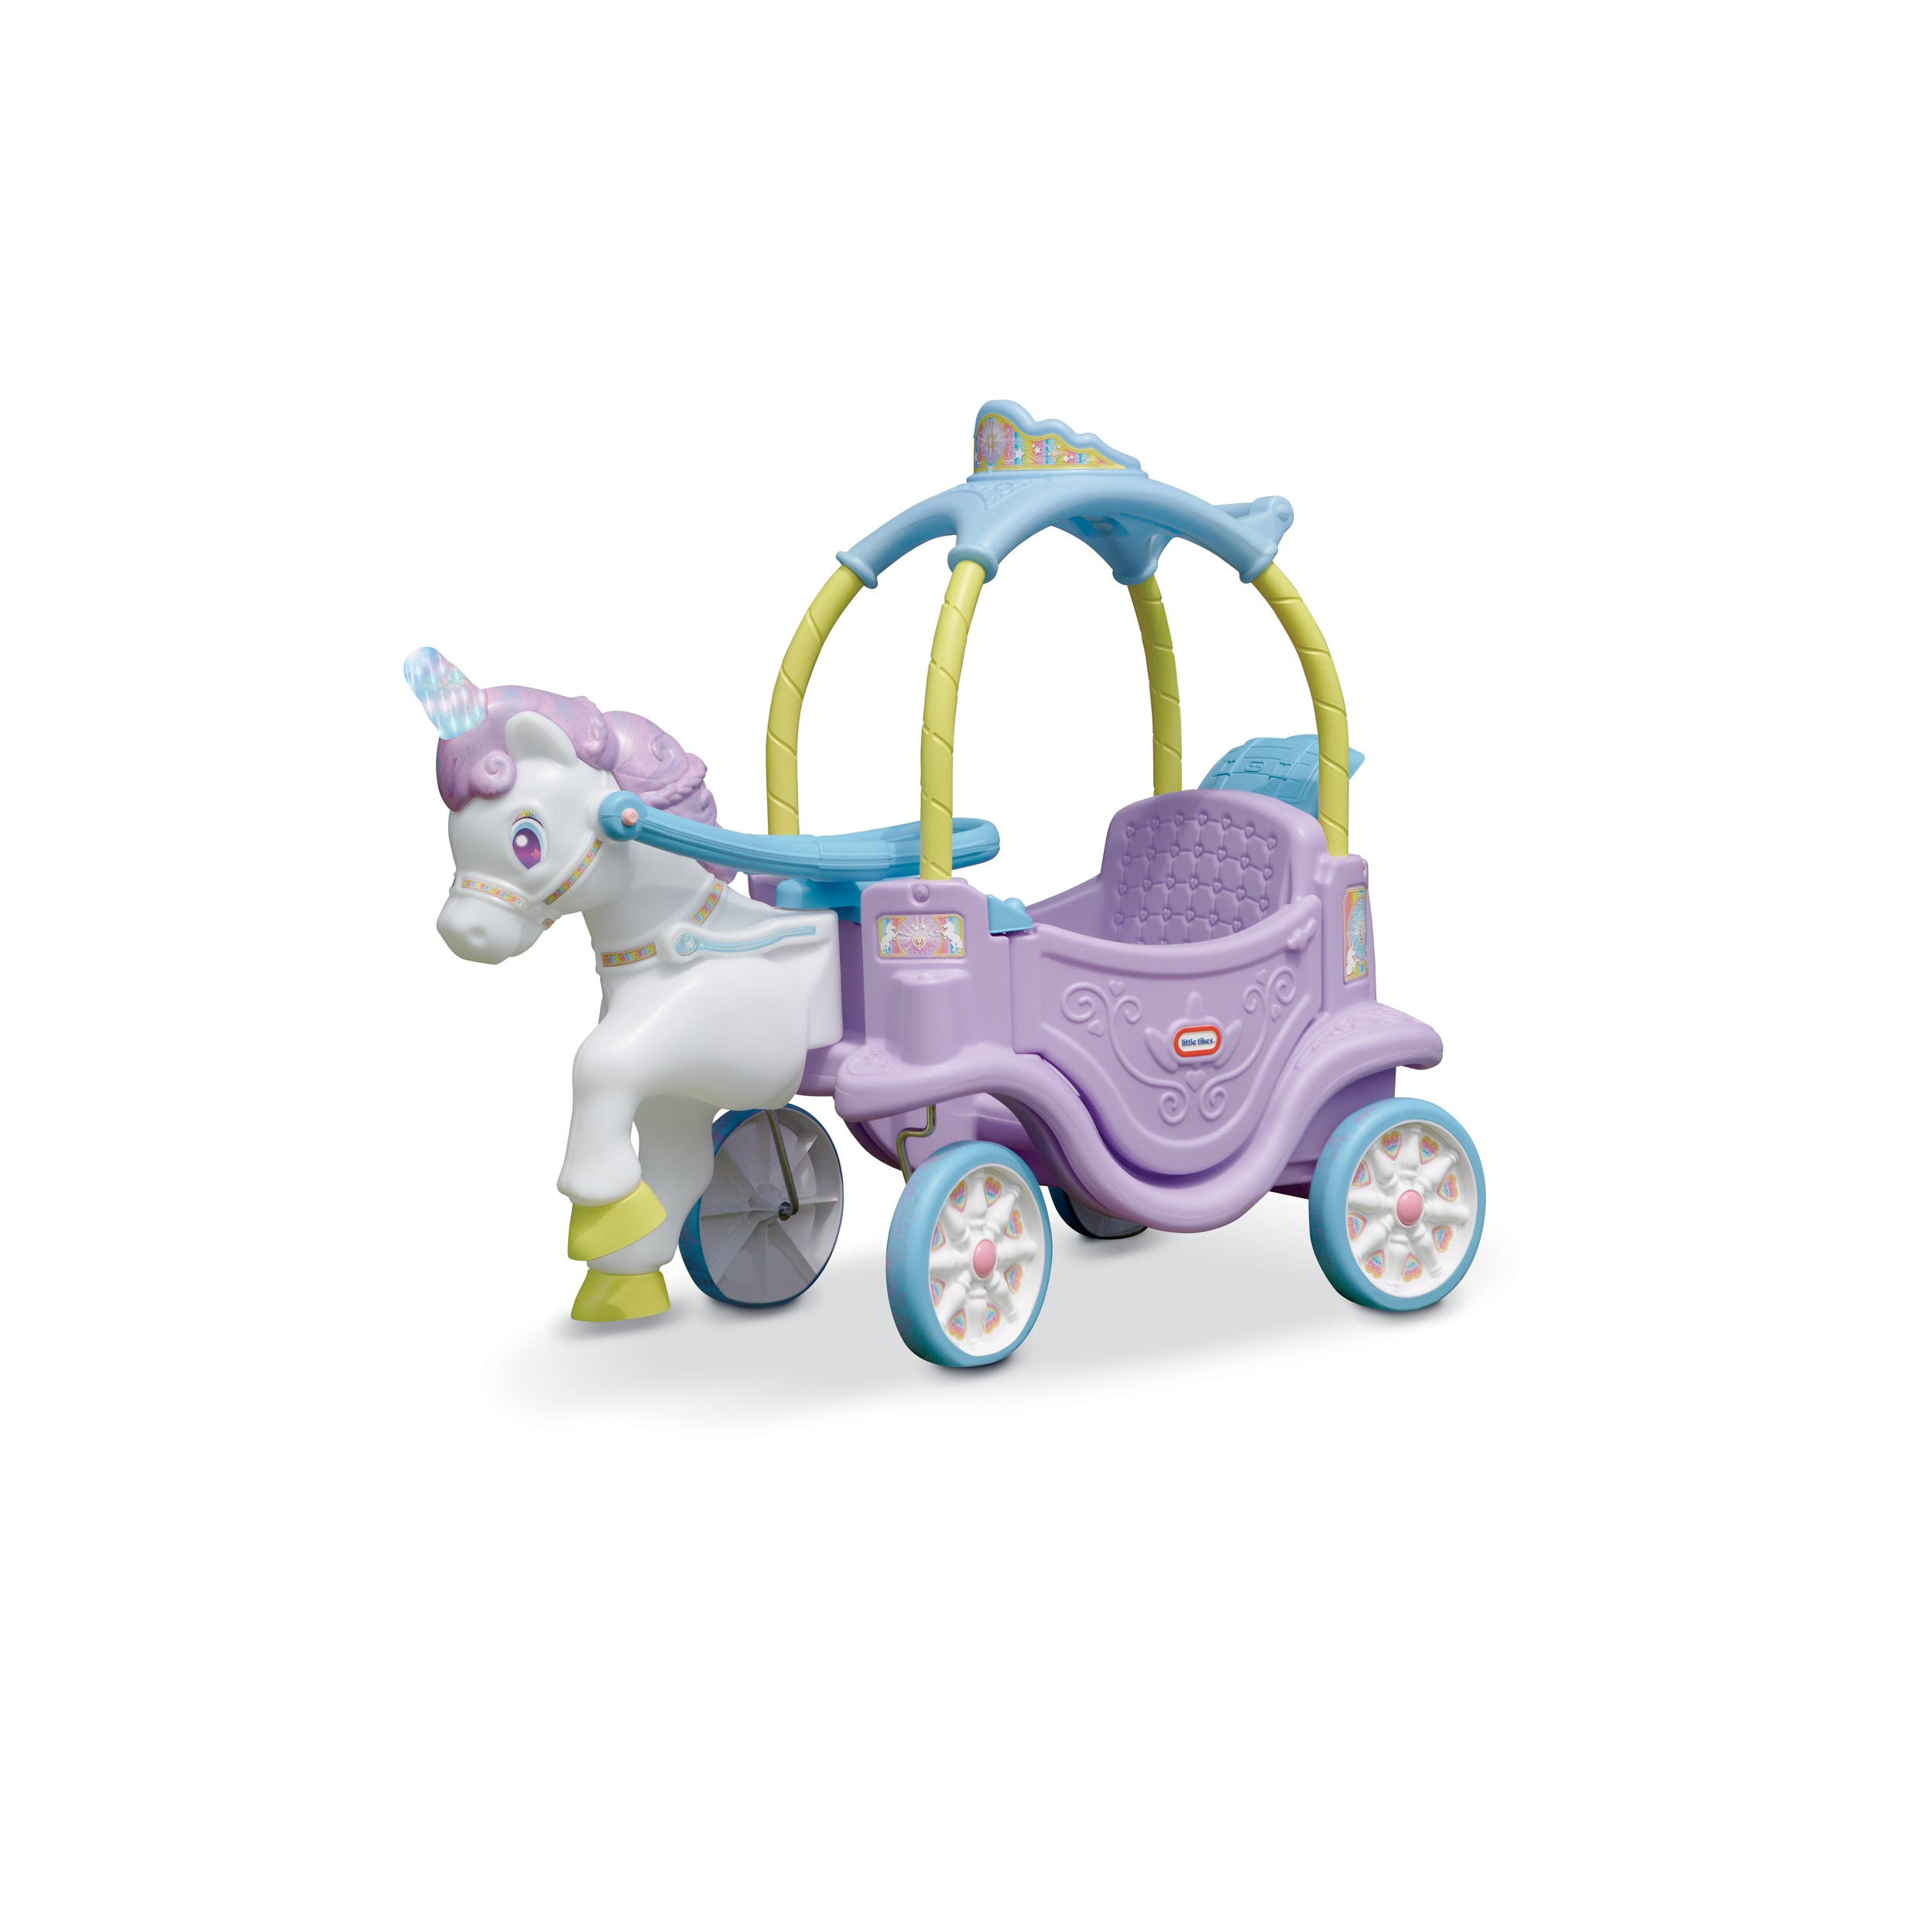 Little Tikes Magical Unicorn Carriage by Little Tikes Company